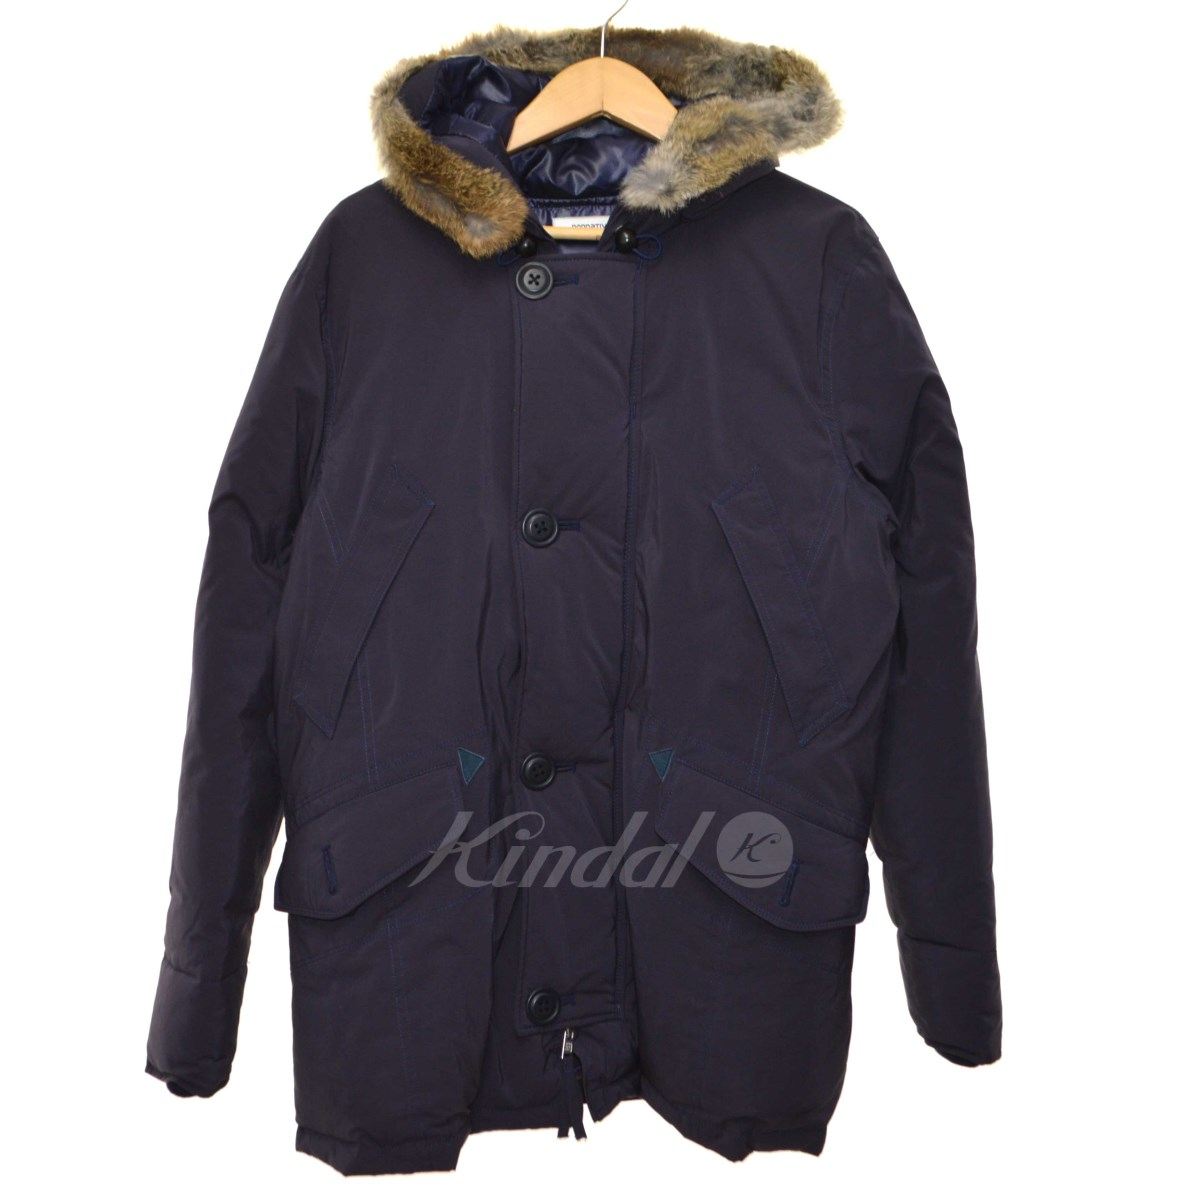 【中古】nonnative 2013AW「EXPLORER HOODED DOWN JACKET」フライトジャケット 【送料無料】 【001434】 【KIND1550】